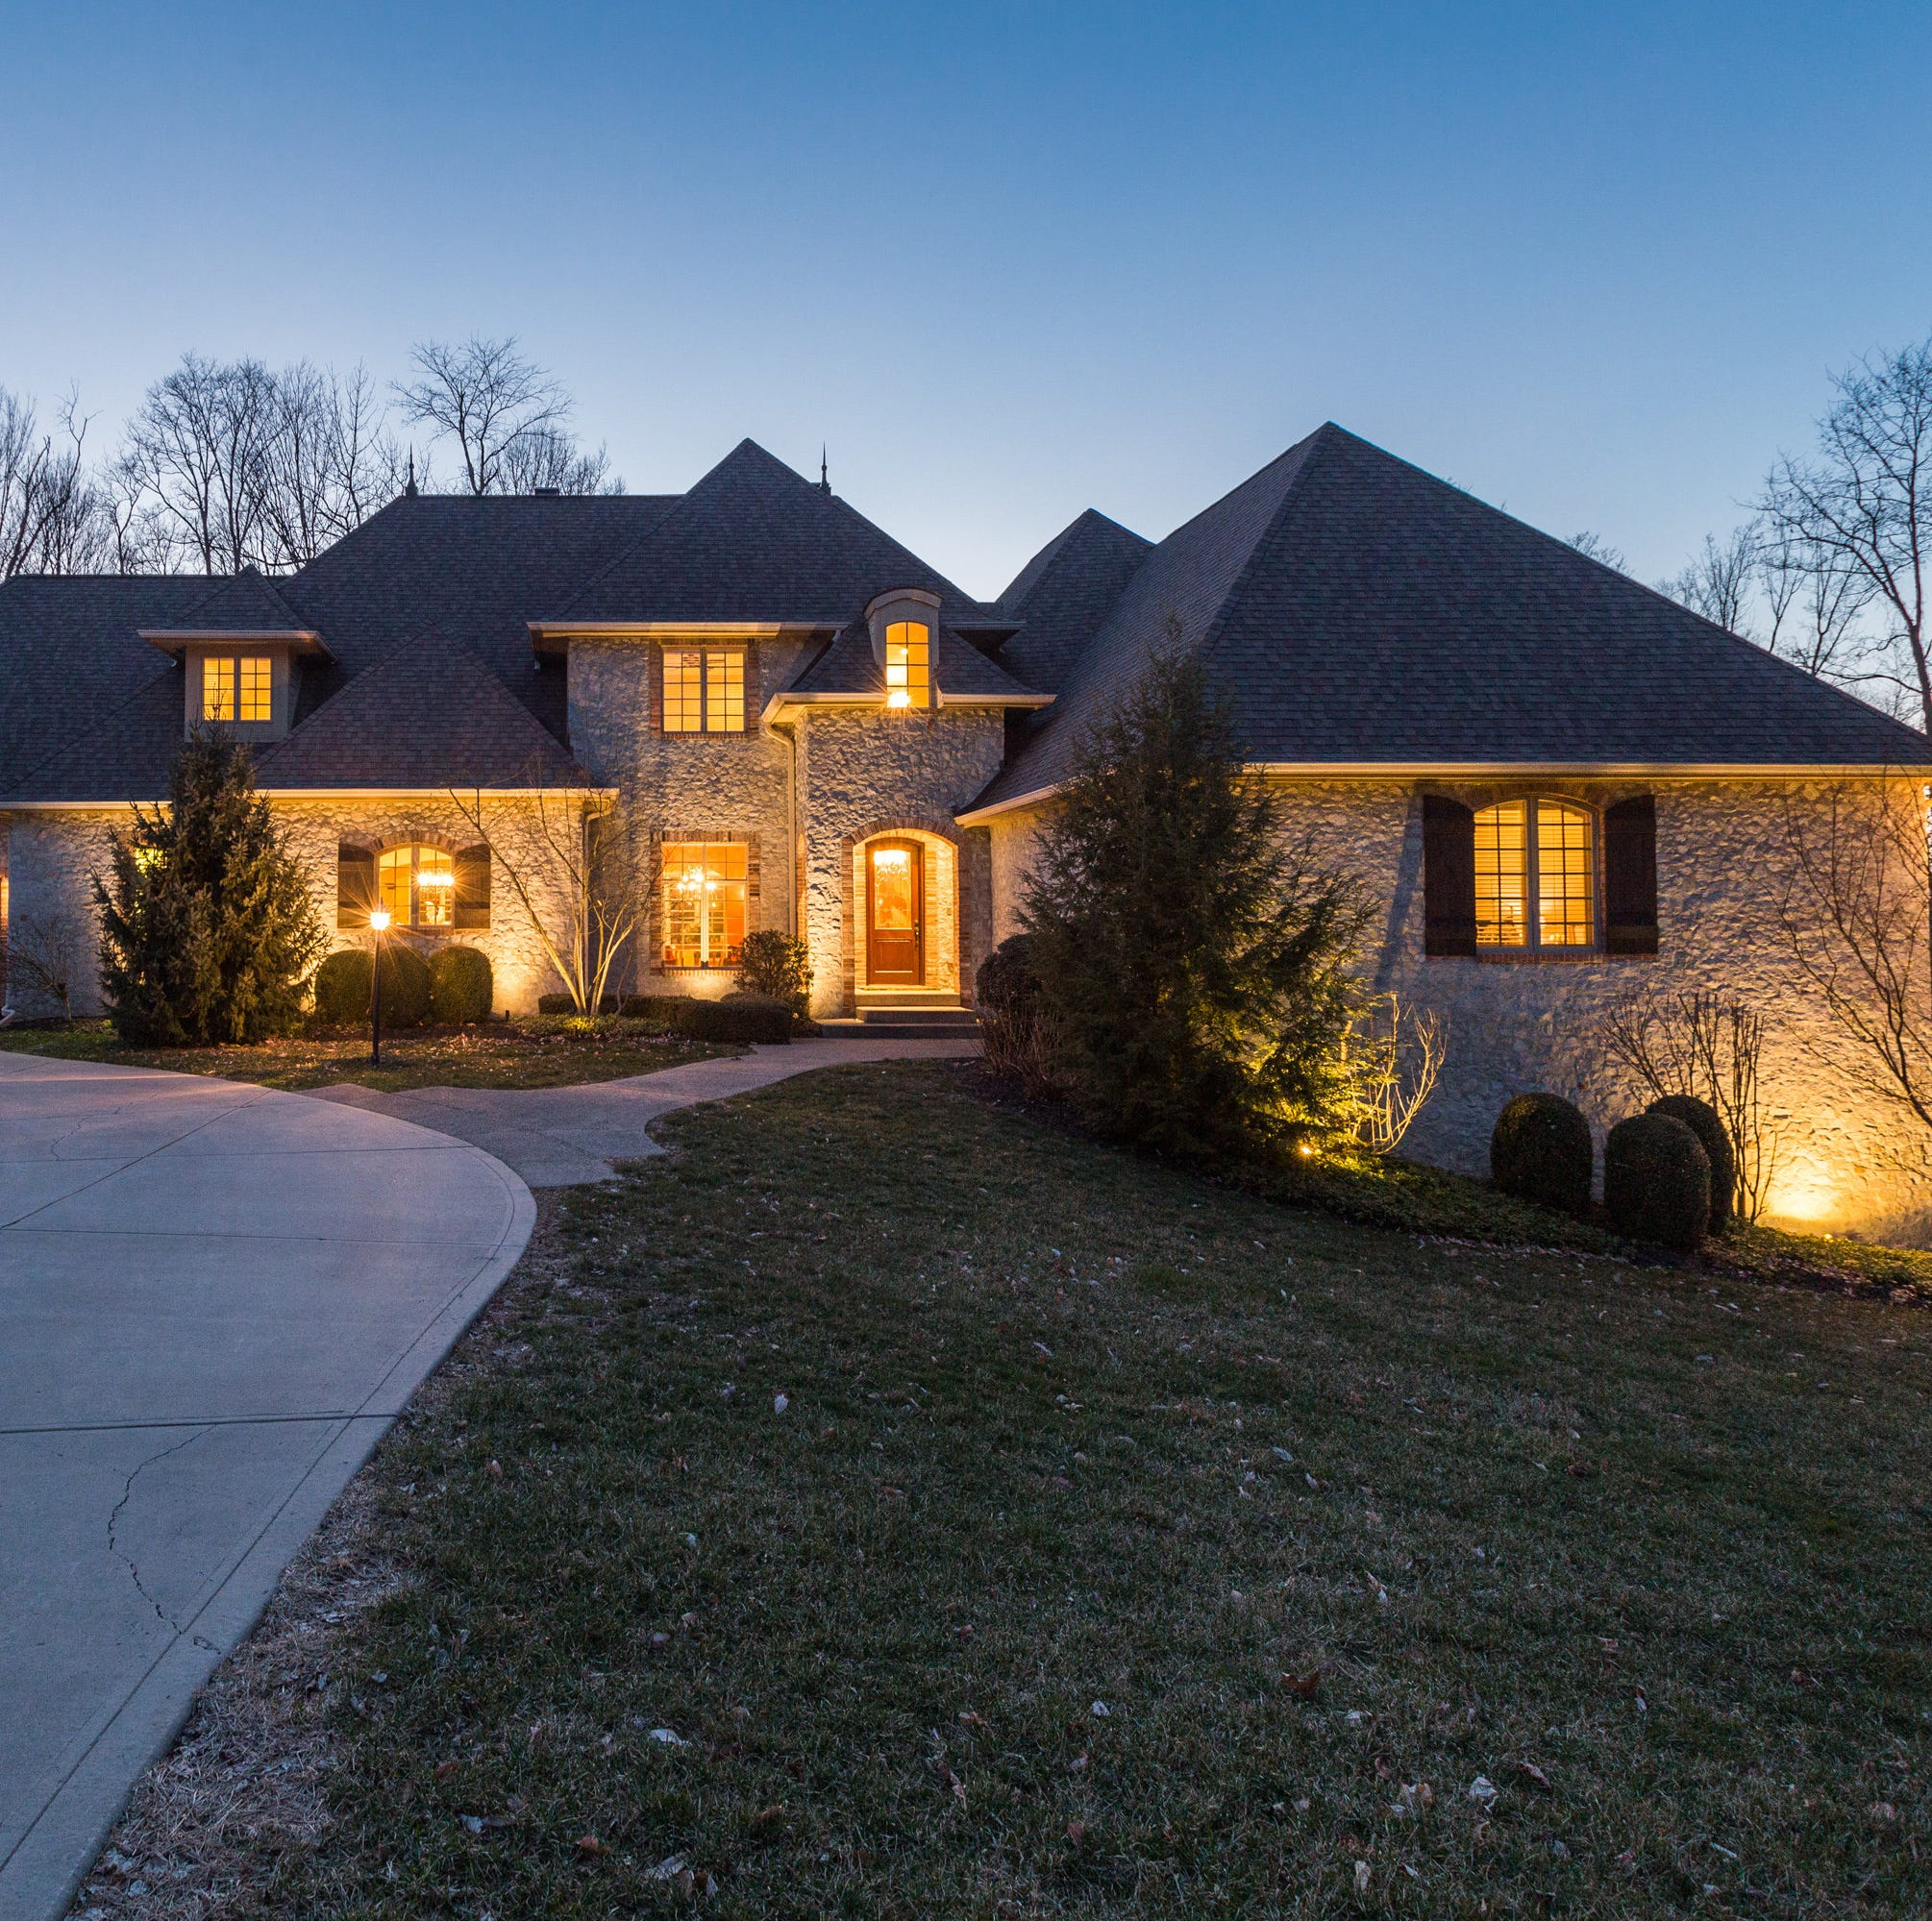 Hot property: Entertain, host sports practices at this Zionsville French Country Manor home